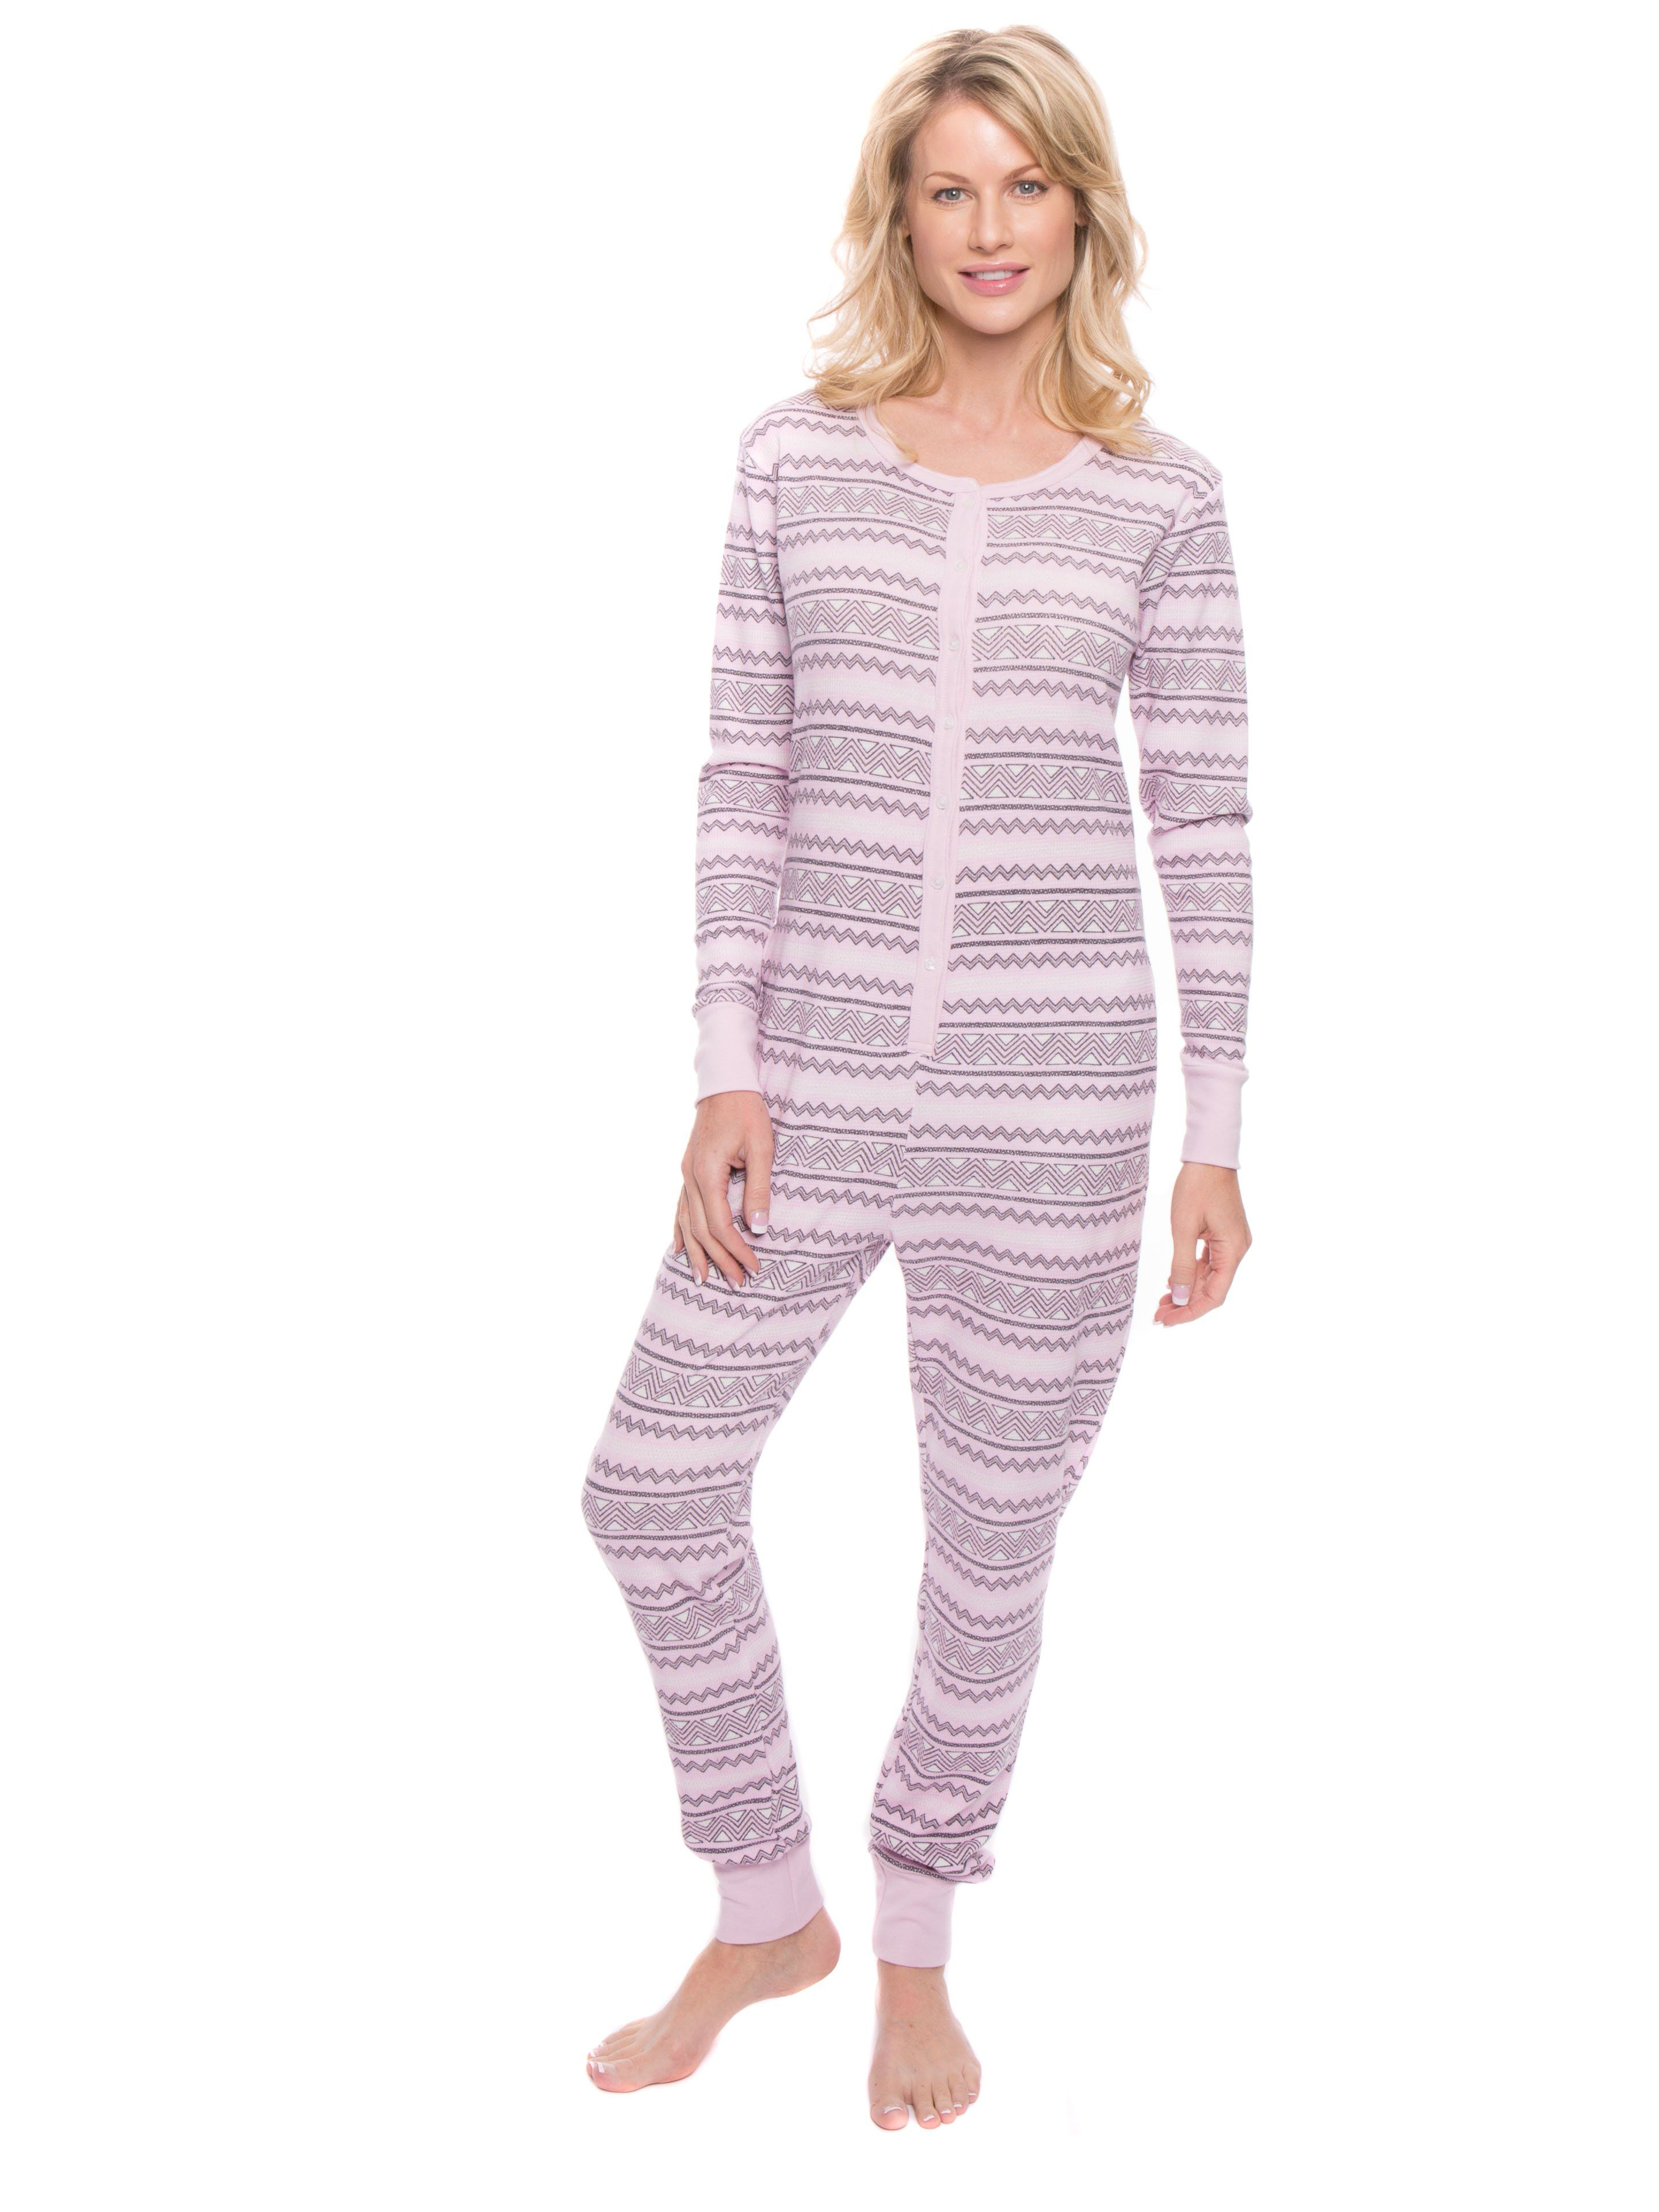 290161ff8a82 Women s Waffle Knit Thermal Onesie Pajama - Geo Nordic Lilac. Women